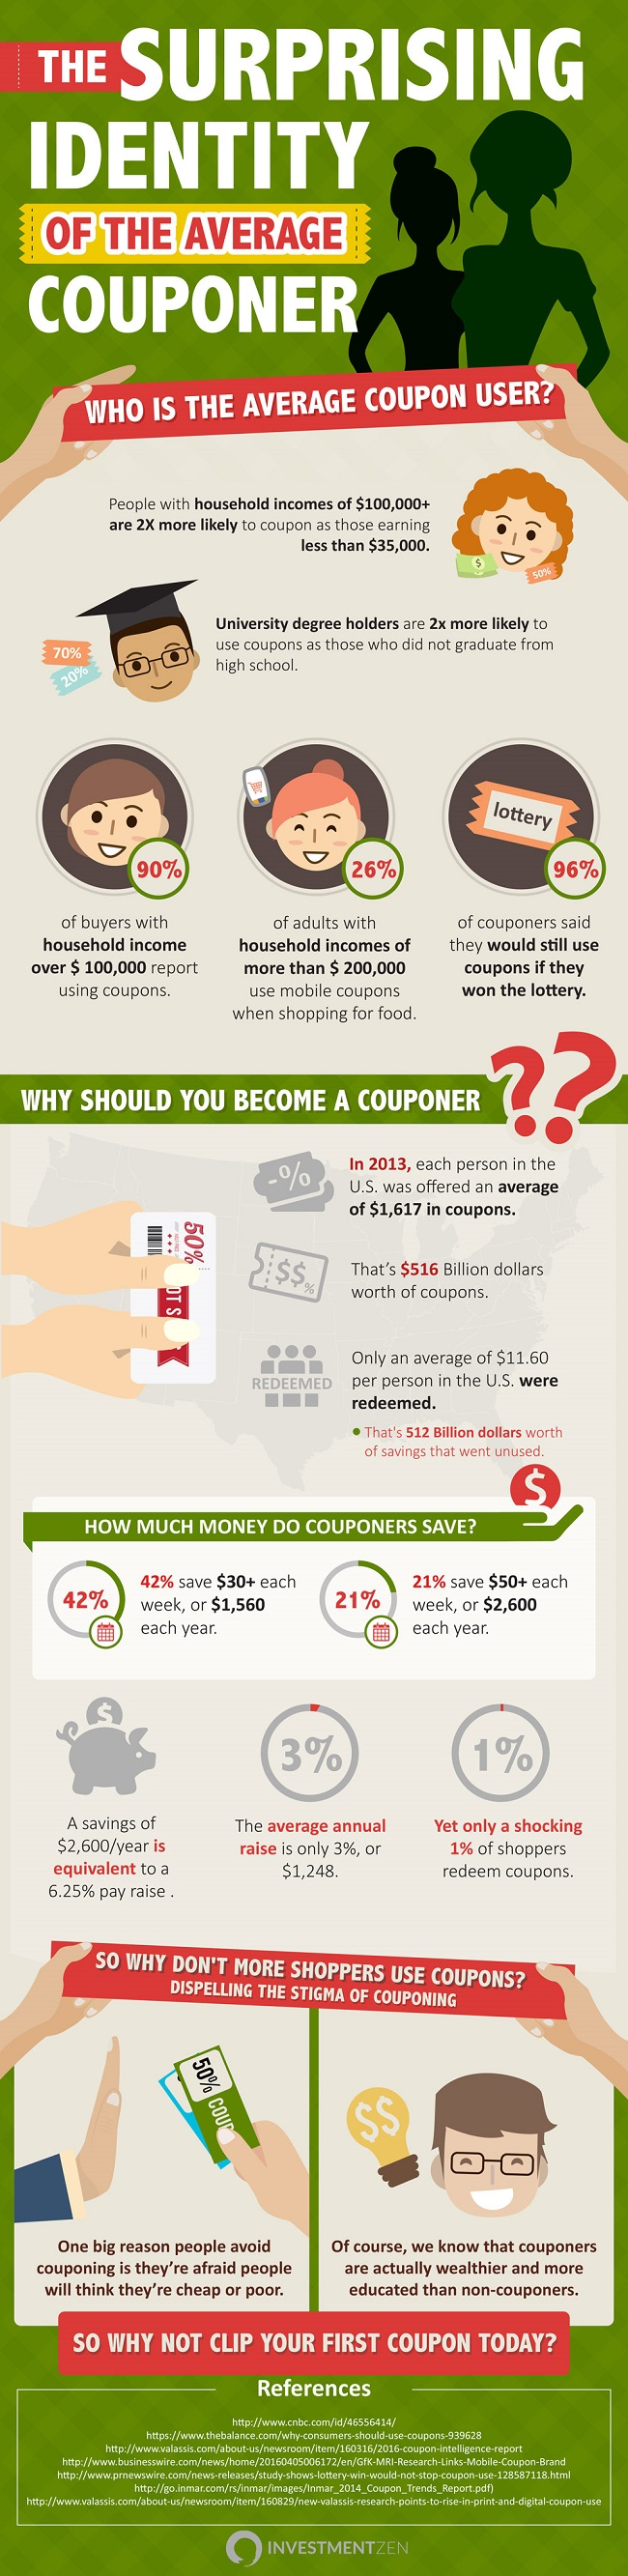 Not Clipping Coupons? You Could Be Missing Out On Thousands In Savings Yearly